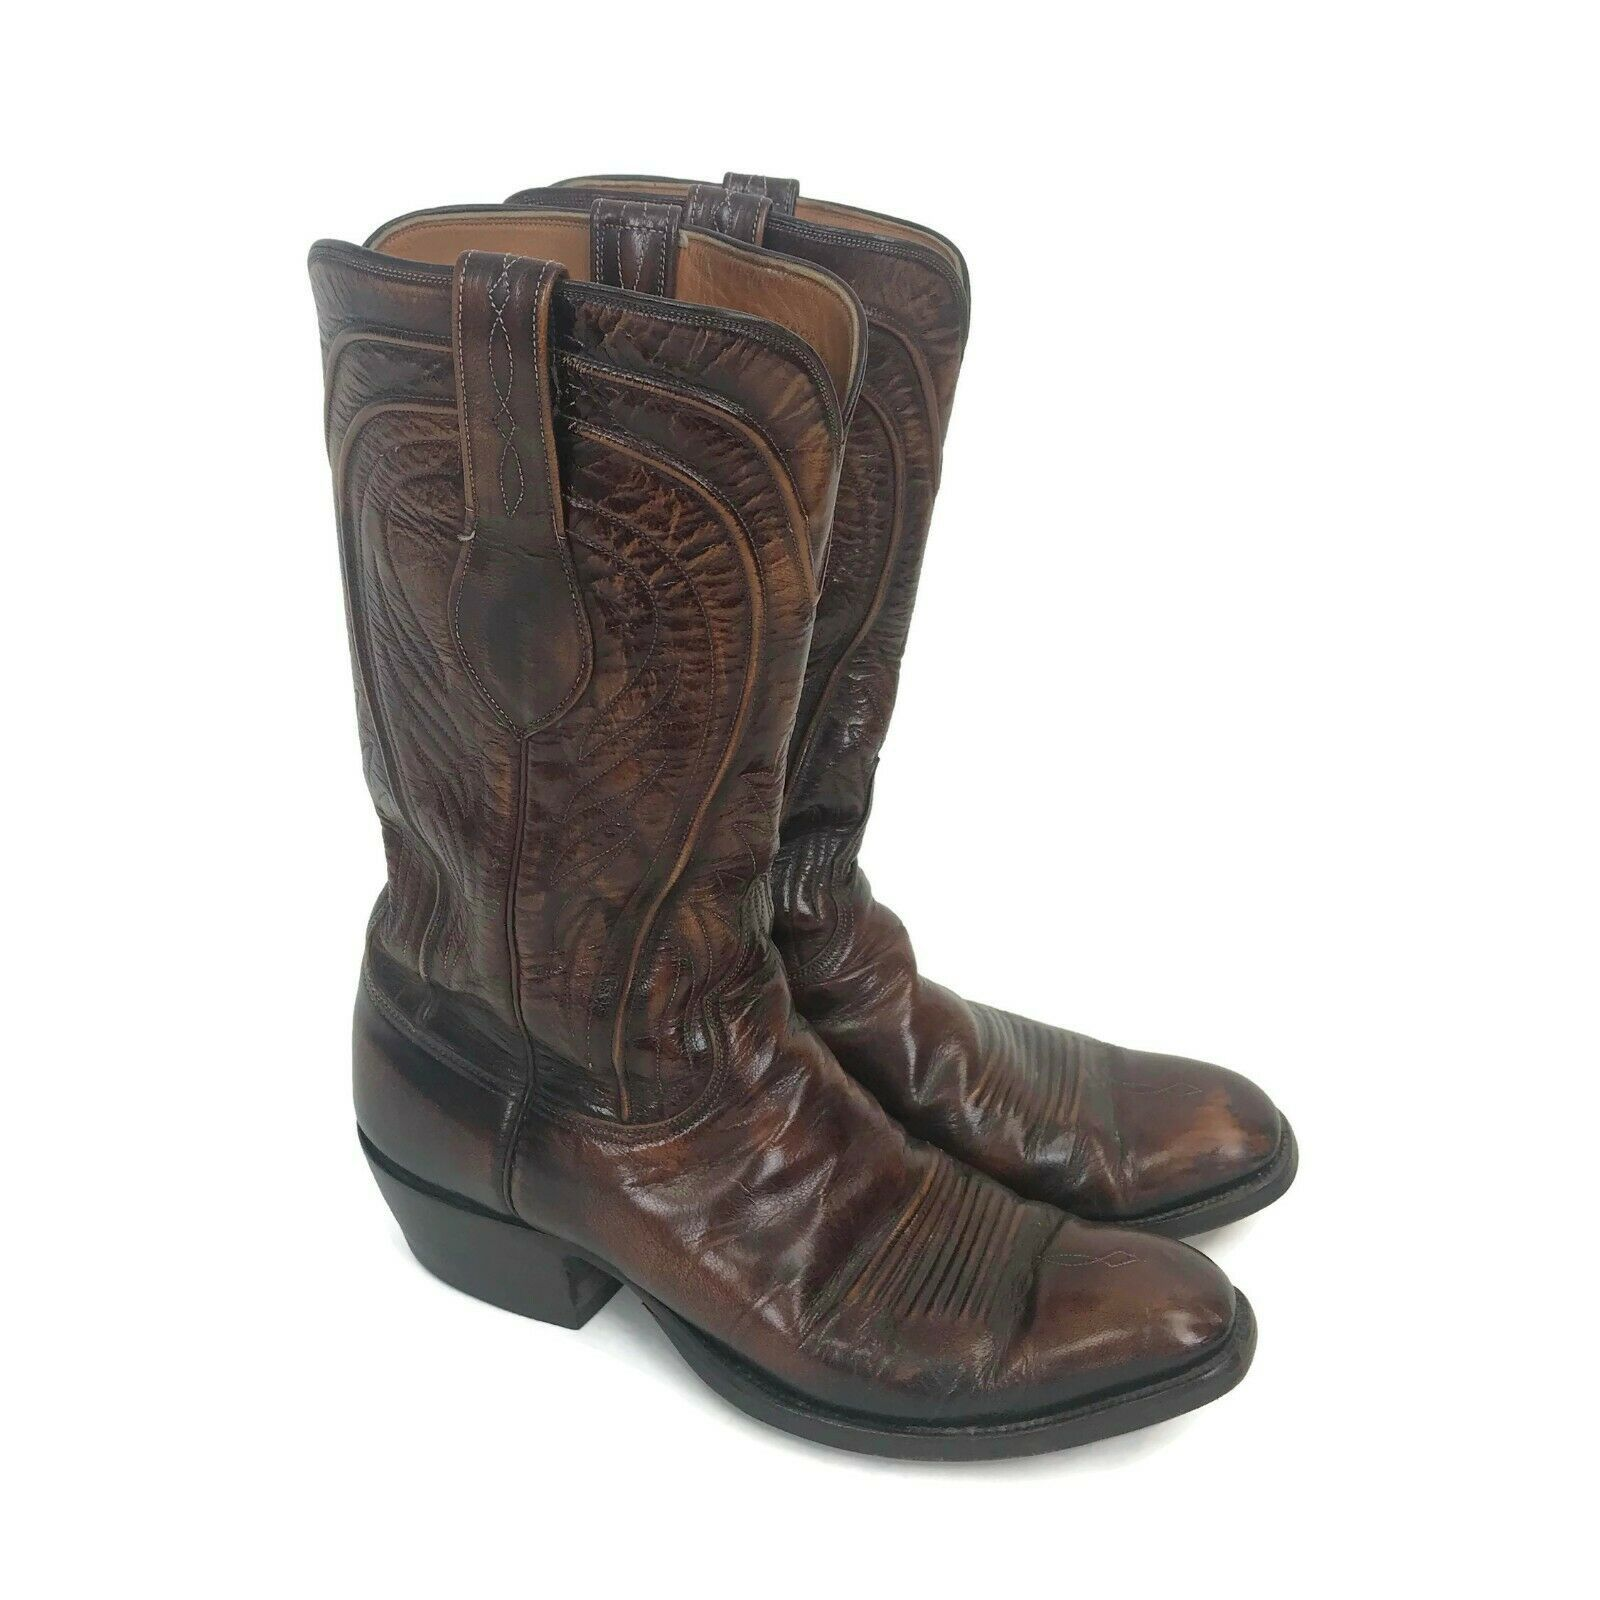 42d28235f57 Lucchese Boot: 29 listings